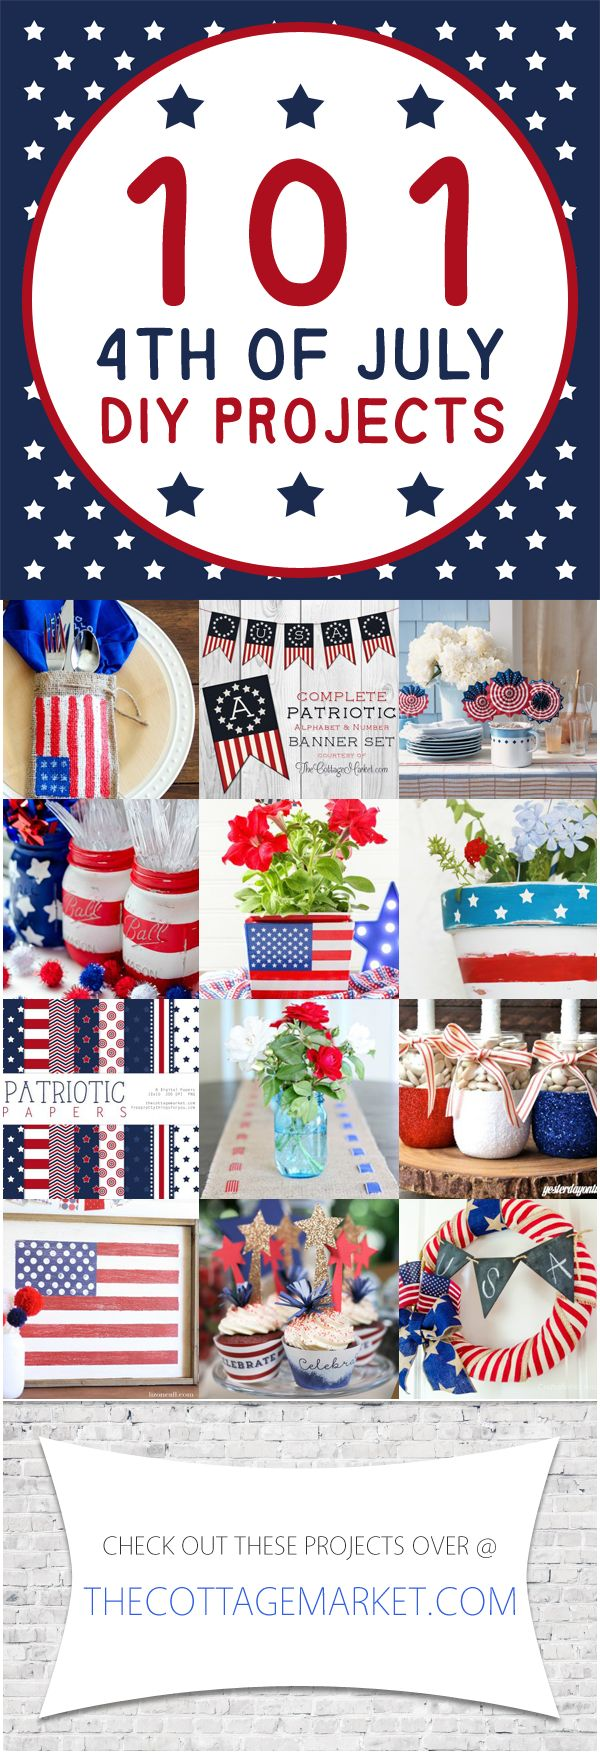 101 4th of July DIY Projects - The Cottage Market